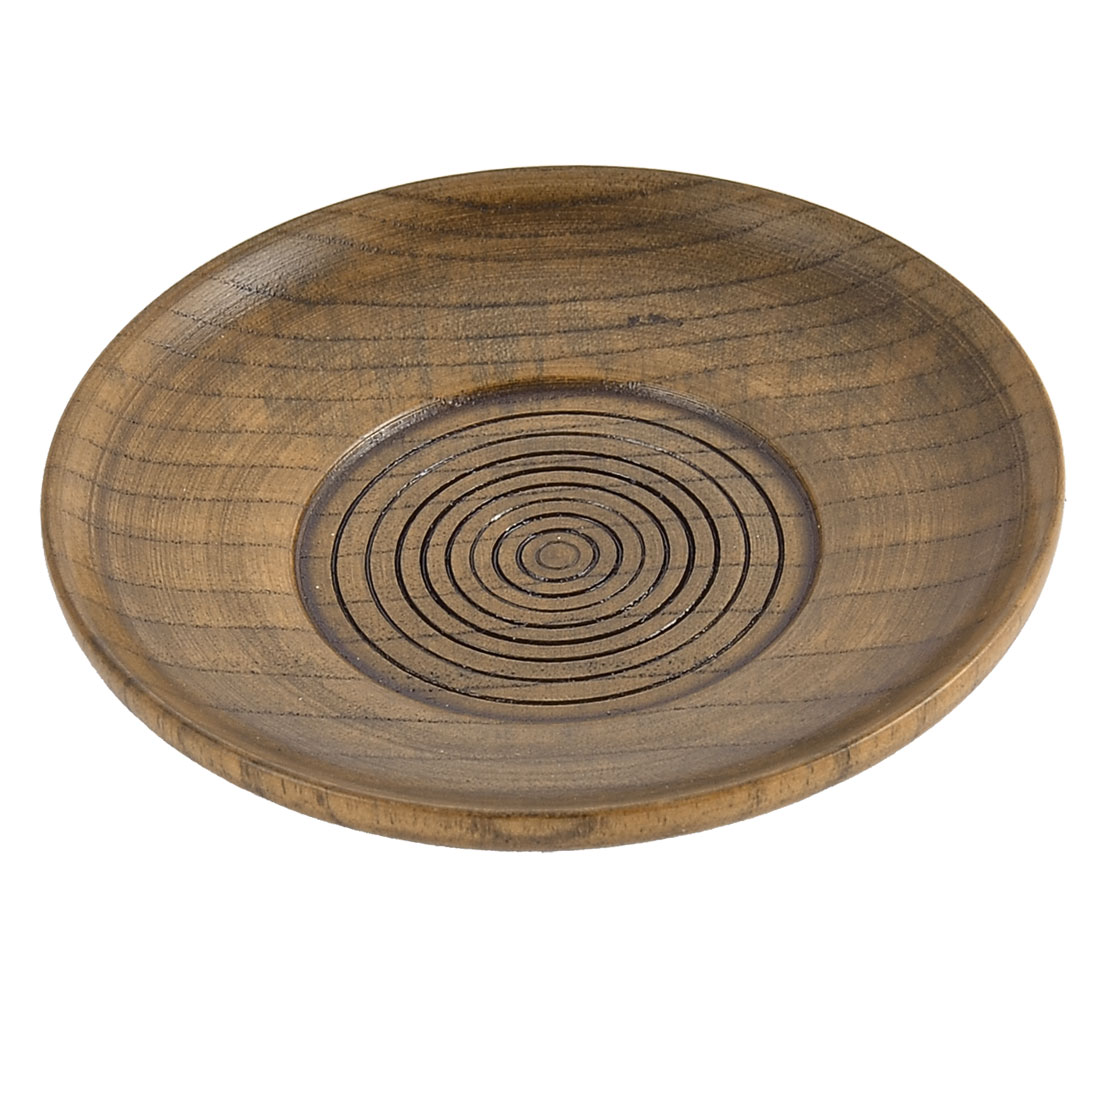 Restaurant Wood Grain Pattern Round Shape Tea Cup Mat Tray Container 10.5cm Dia